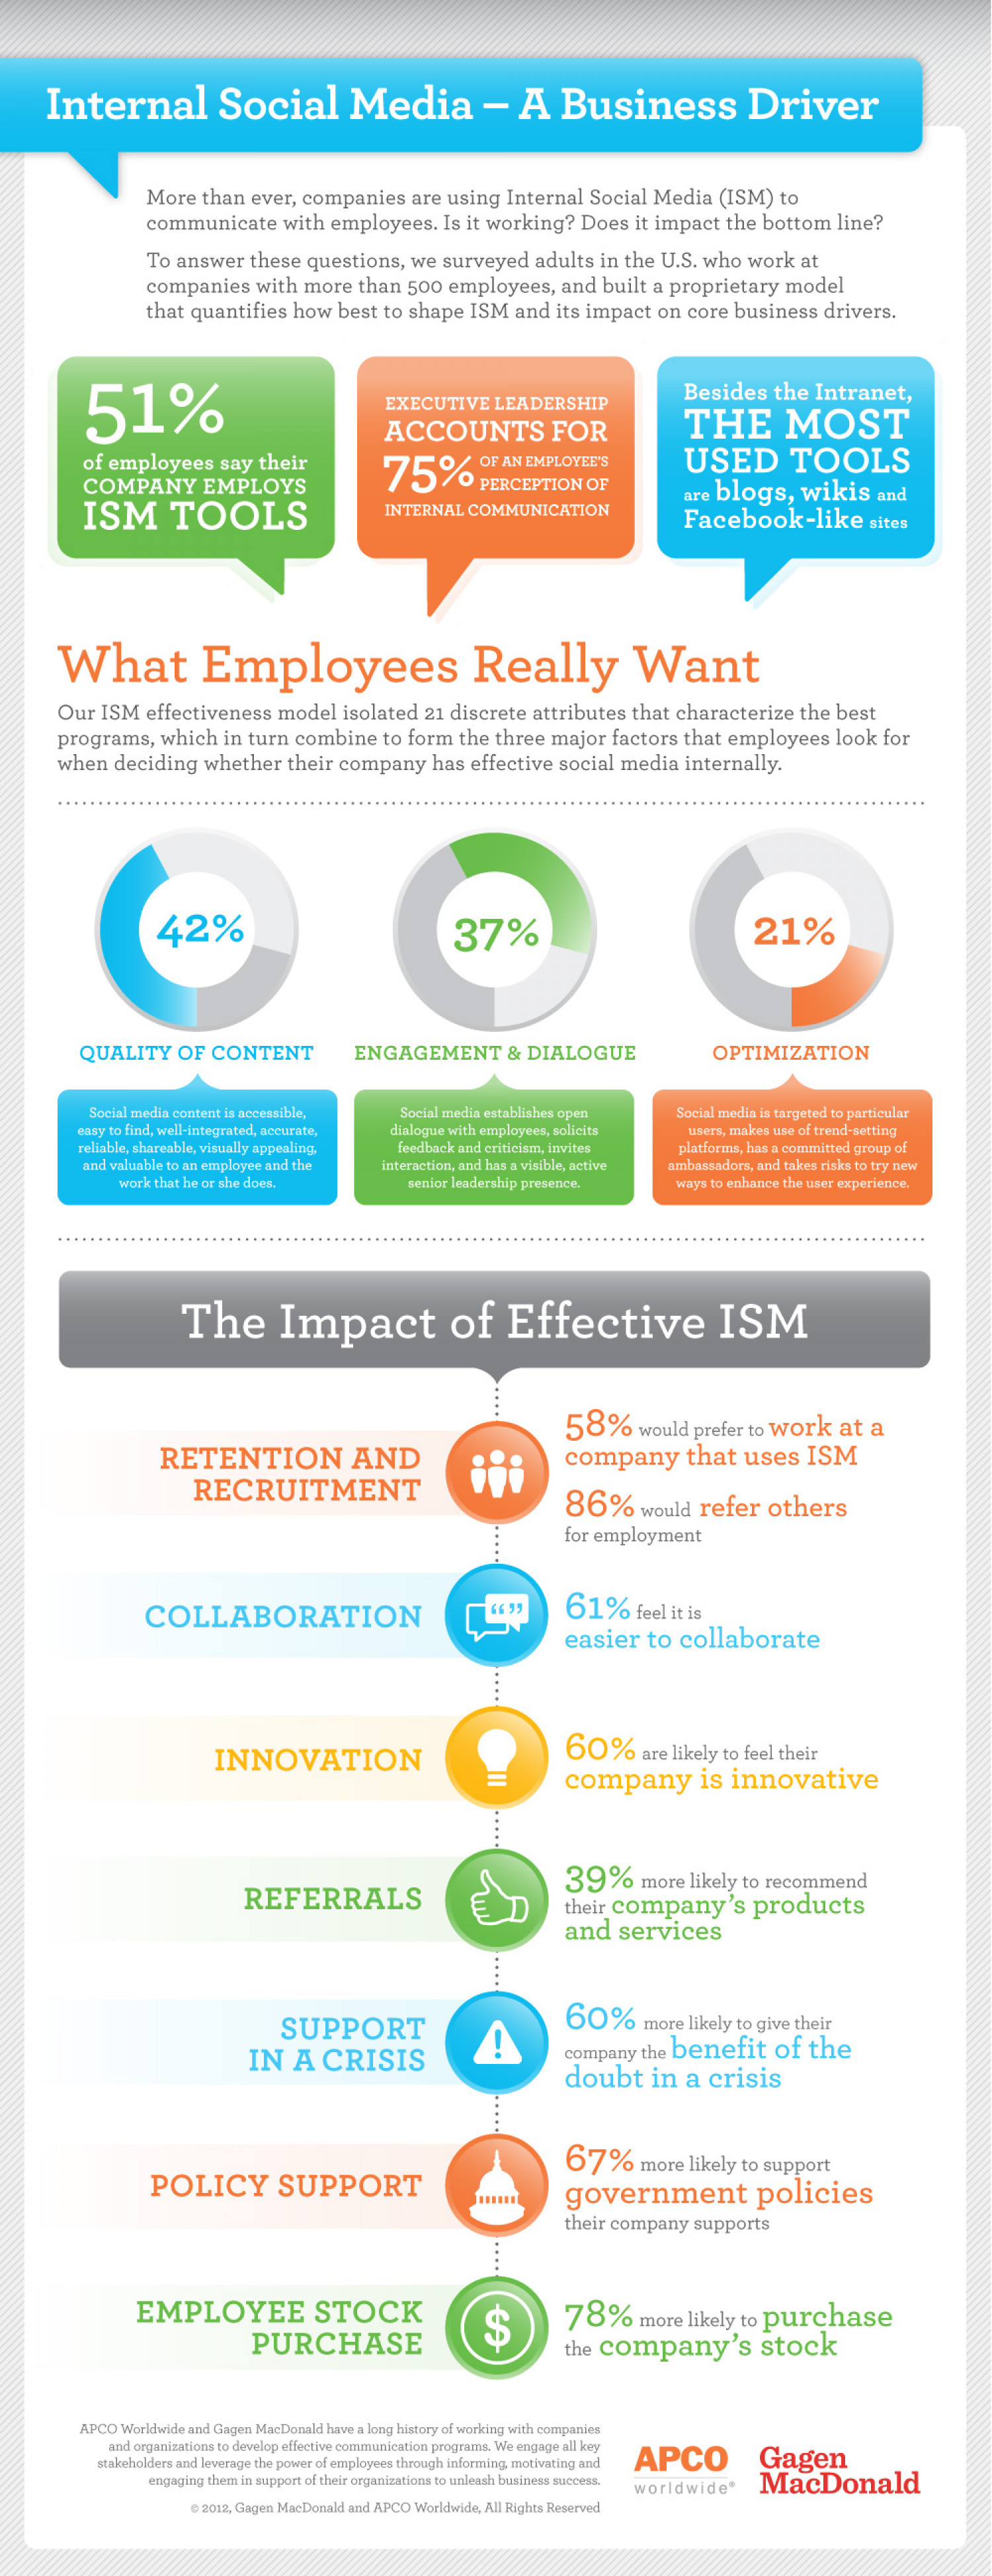 Internal Social Media - A Business Driver Infographic